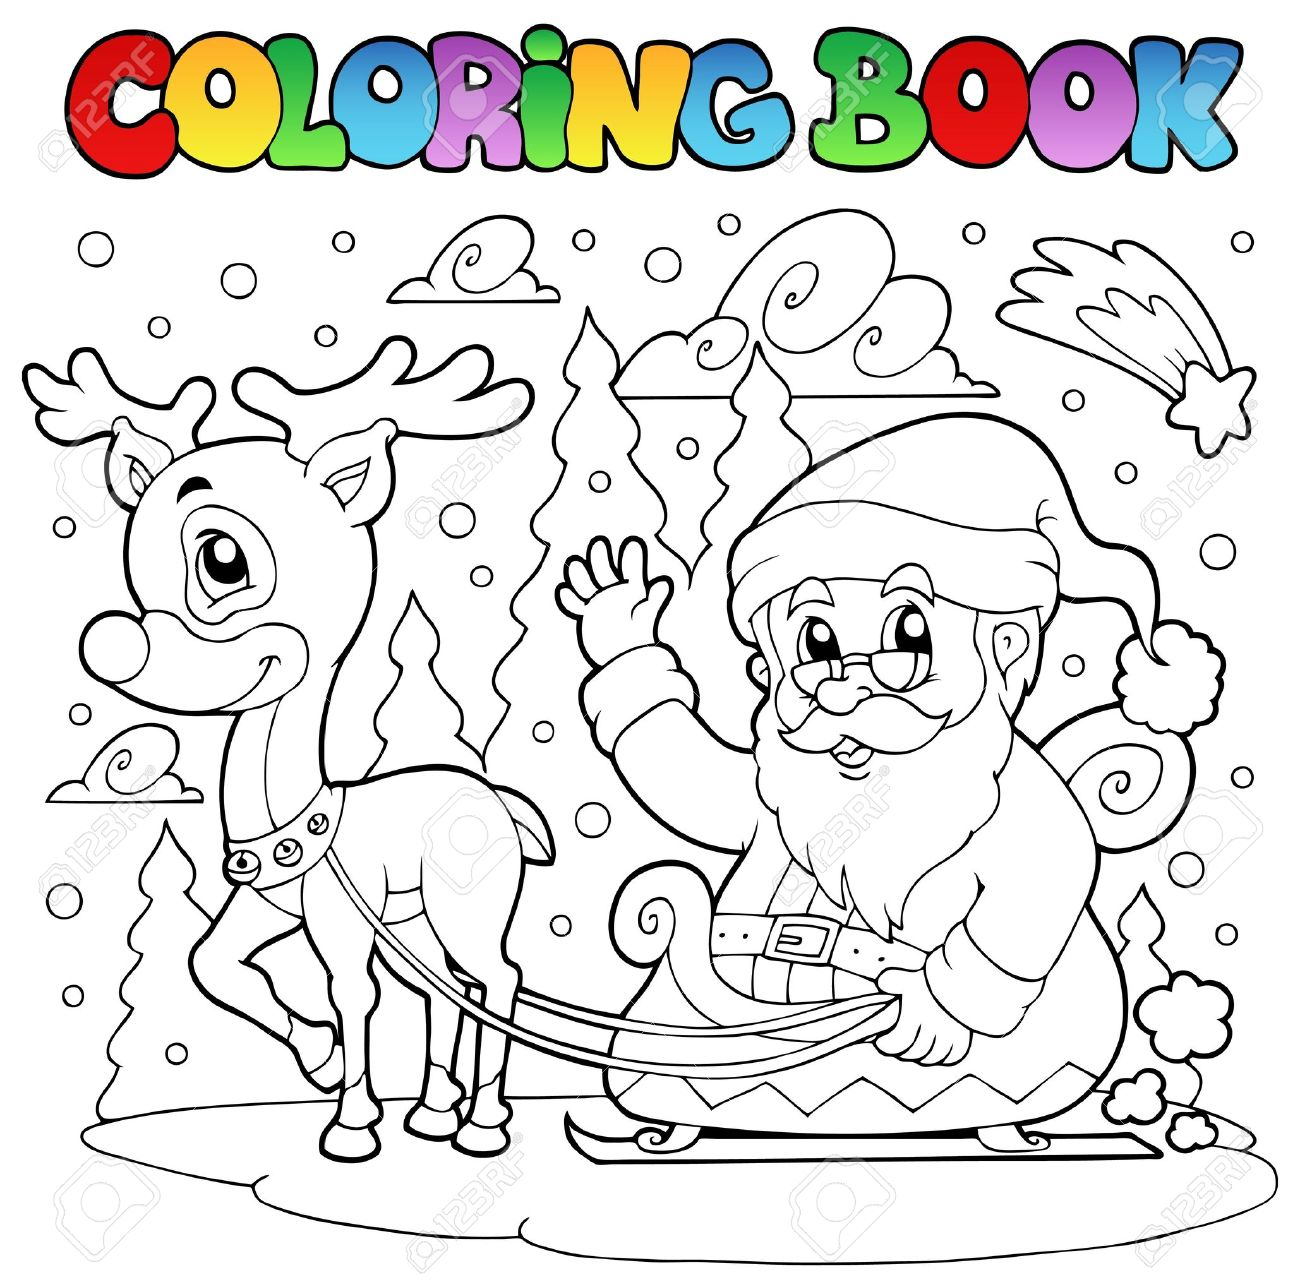 coloring book santa claus theme 4 vector illustration stock vector 10912665